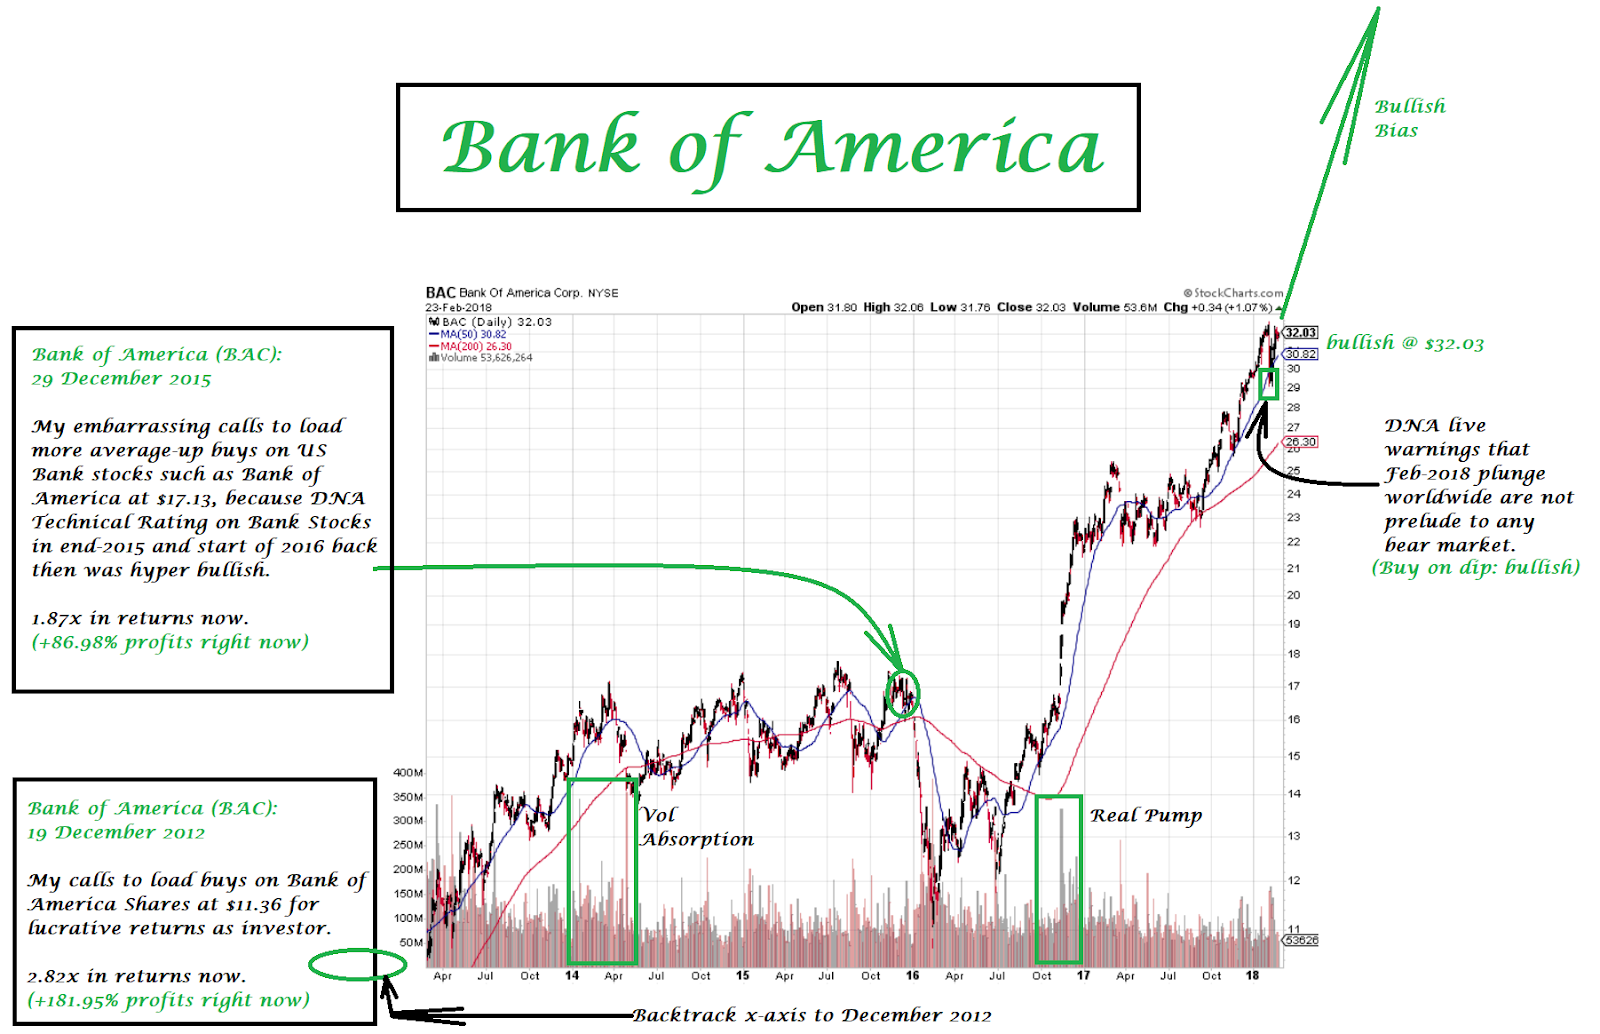 bank of america business analysis Погледајте видео запис bank of america merrill lynch says the number  7 big data, artificial intelligence stock ideas from bank of  also have dramatic ramifications for business and.